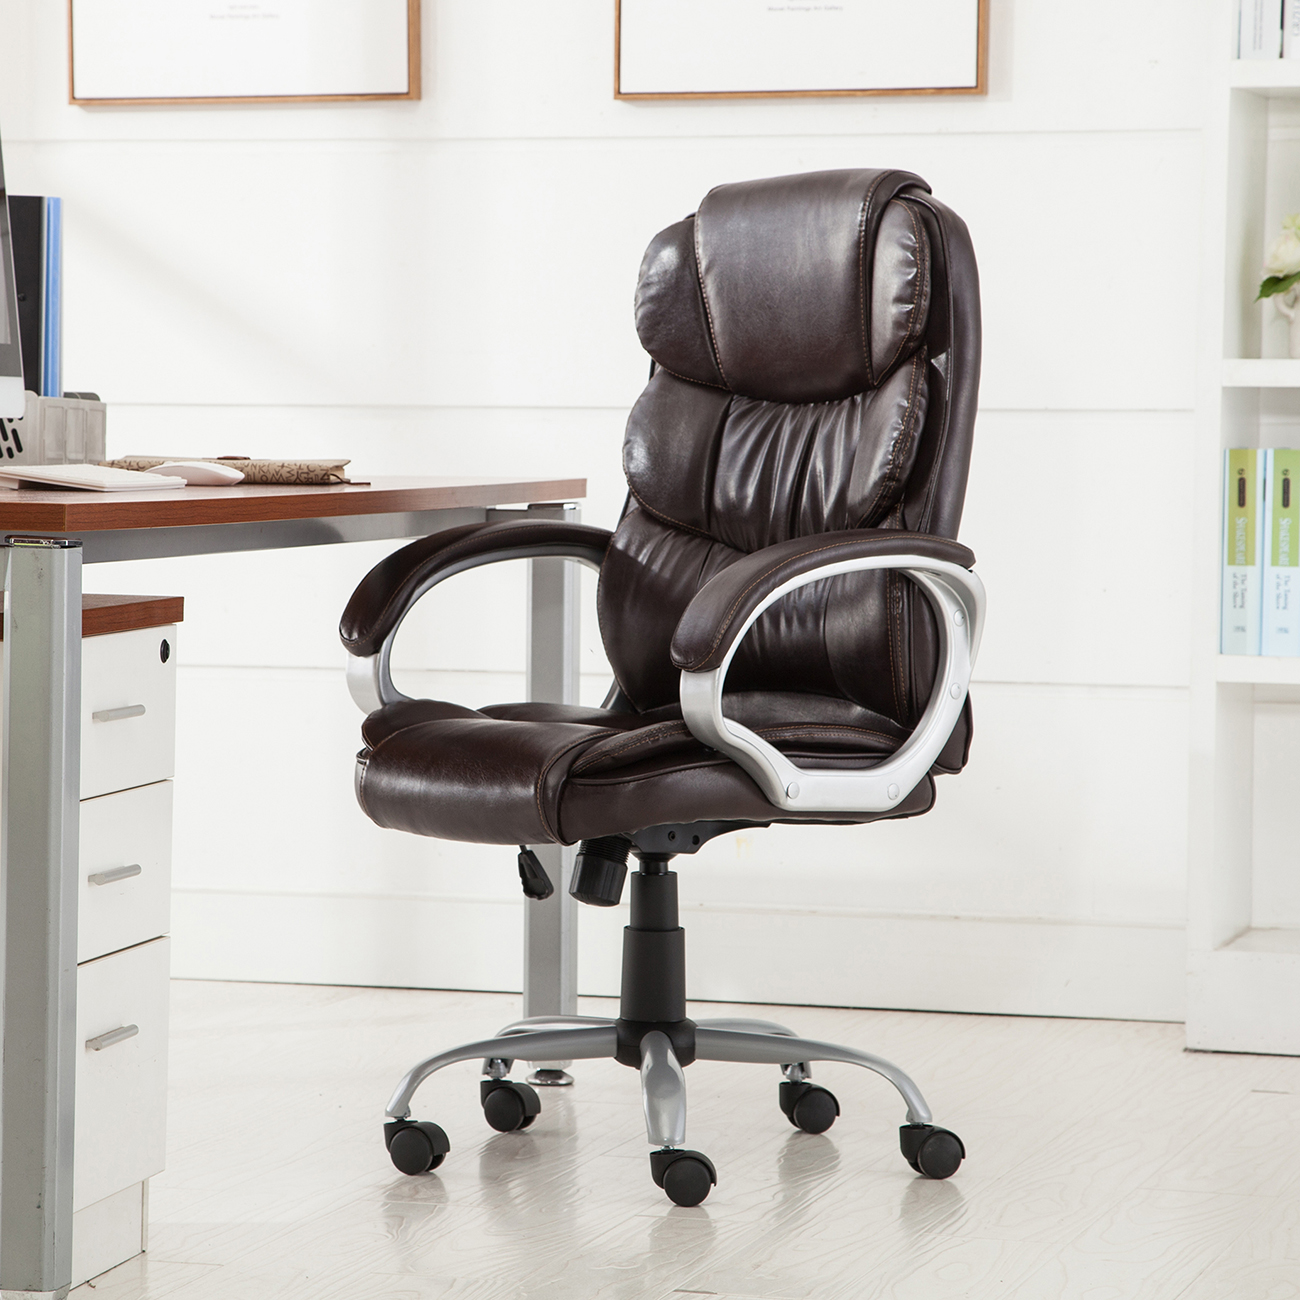 Executive Black Plus Leather Chair Boss